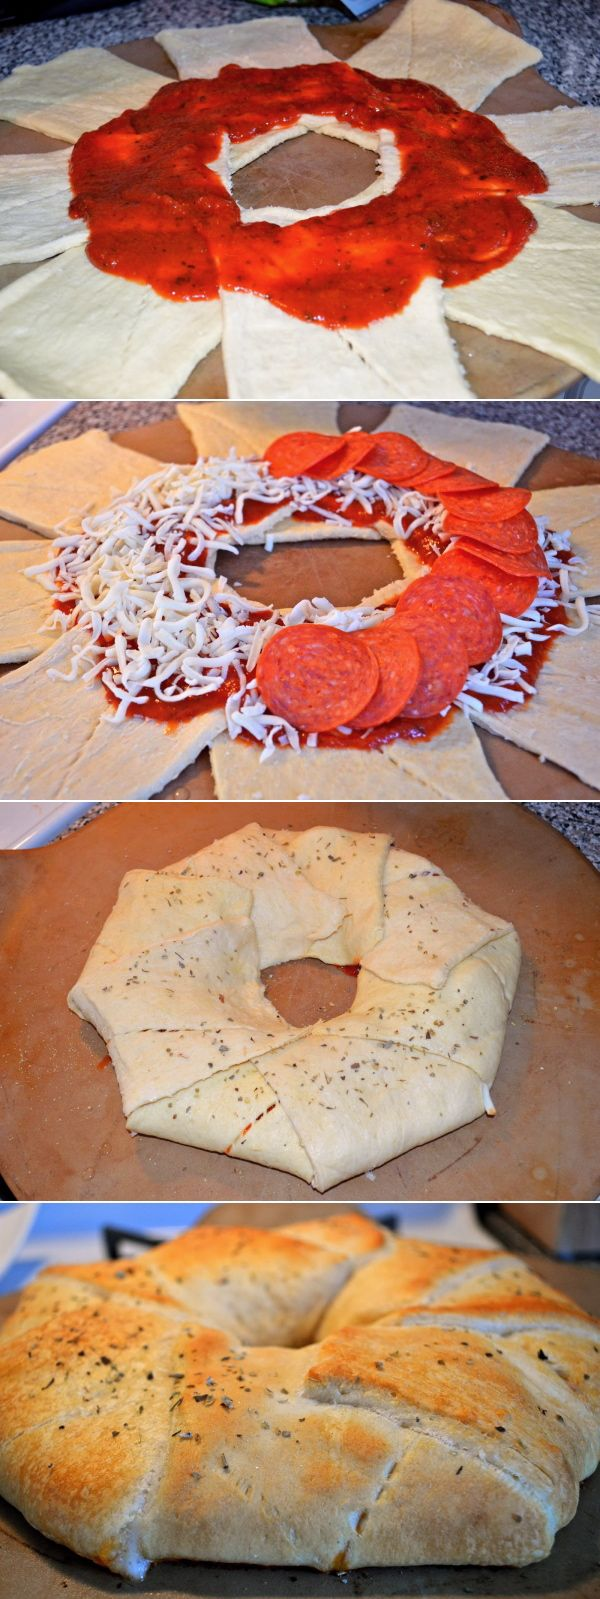 pizza roll.